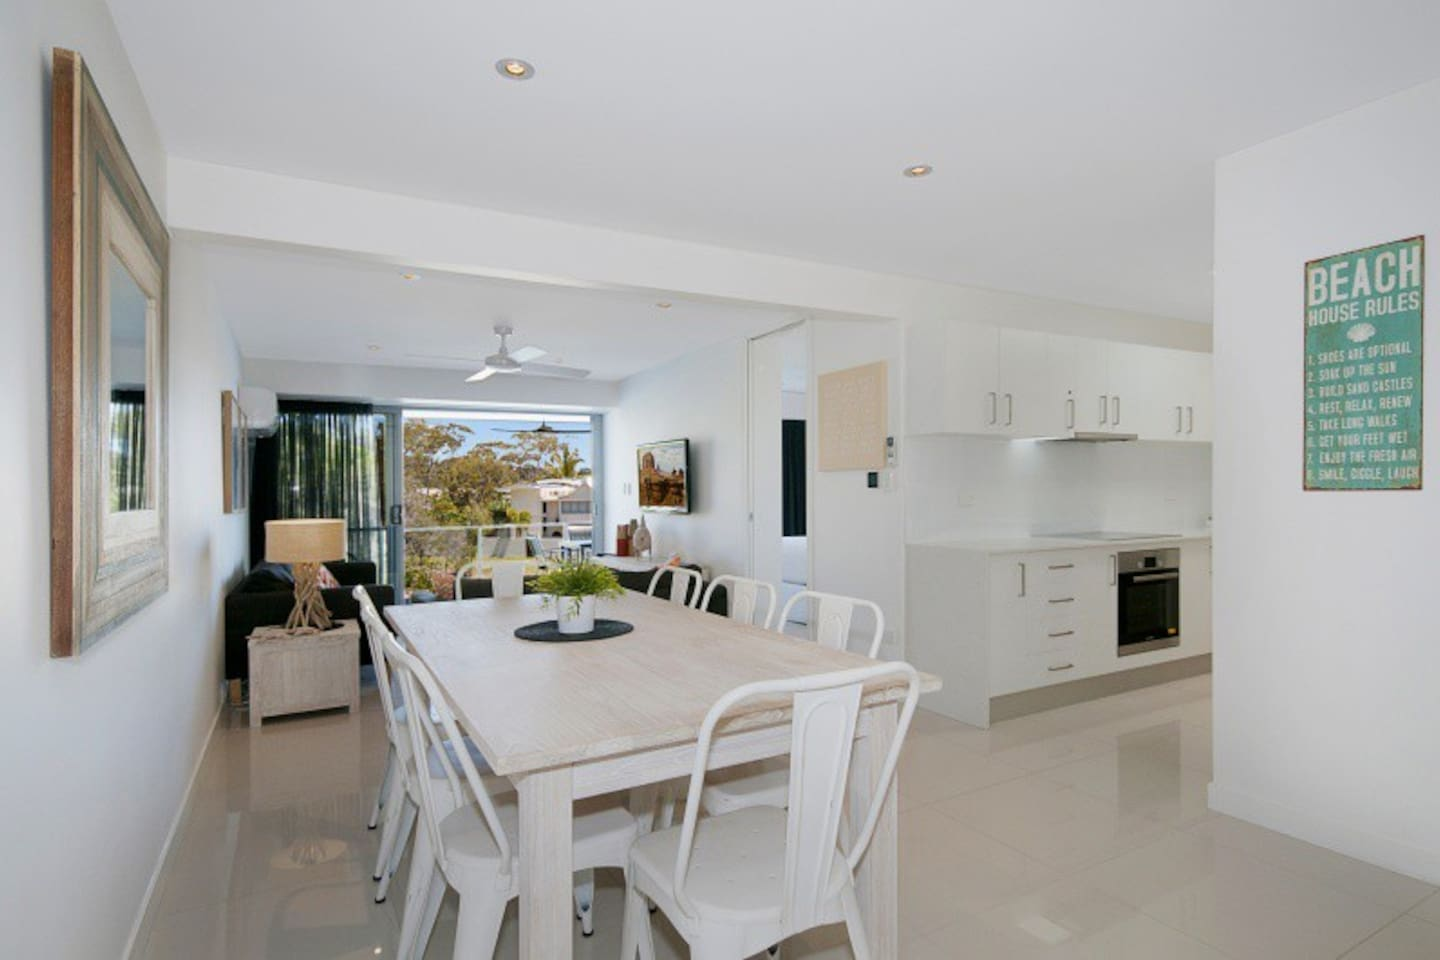 Open plan kitchen, dining and lounge areas with sliding doors opening up to spacious balcony with Noosa River and sunset views